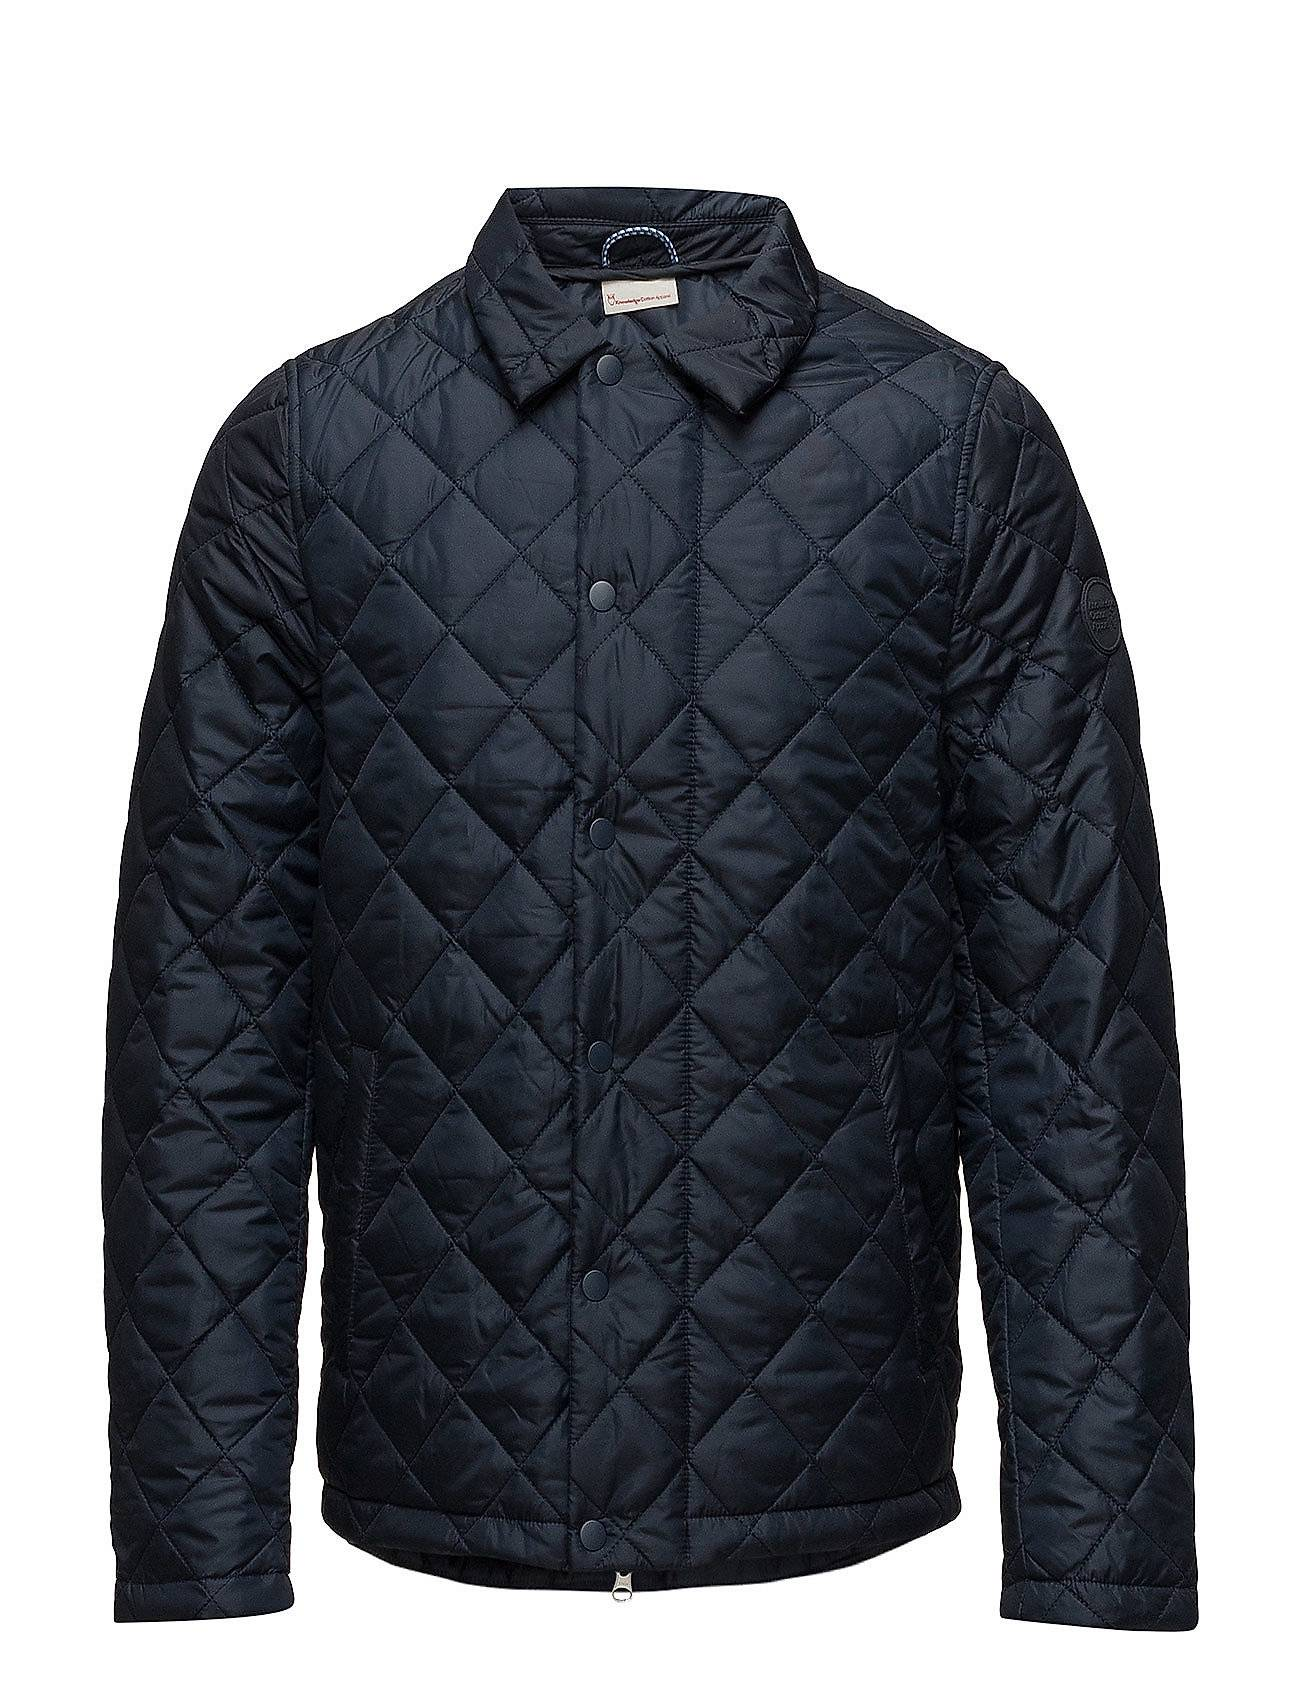 Knowledge Cotton Apparel Quilted Jacket - Grs